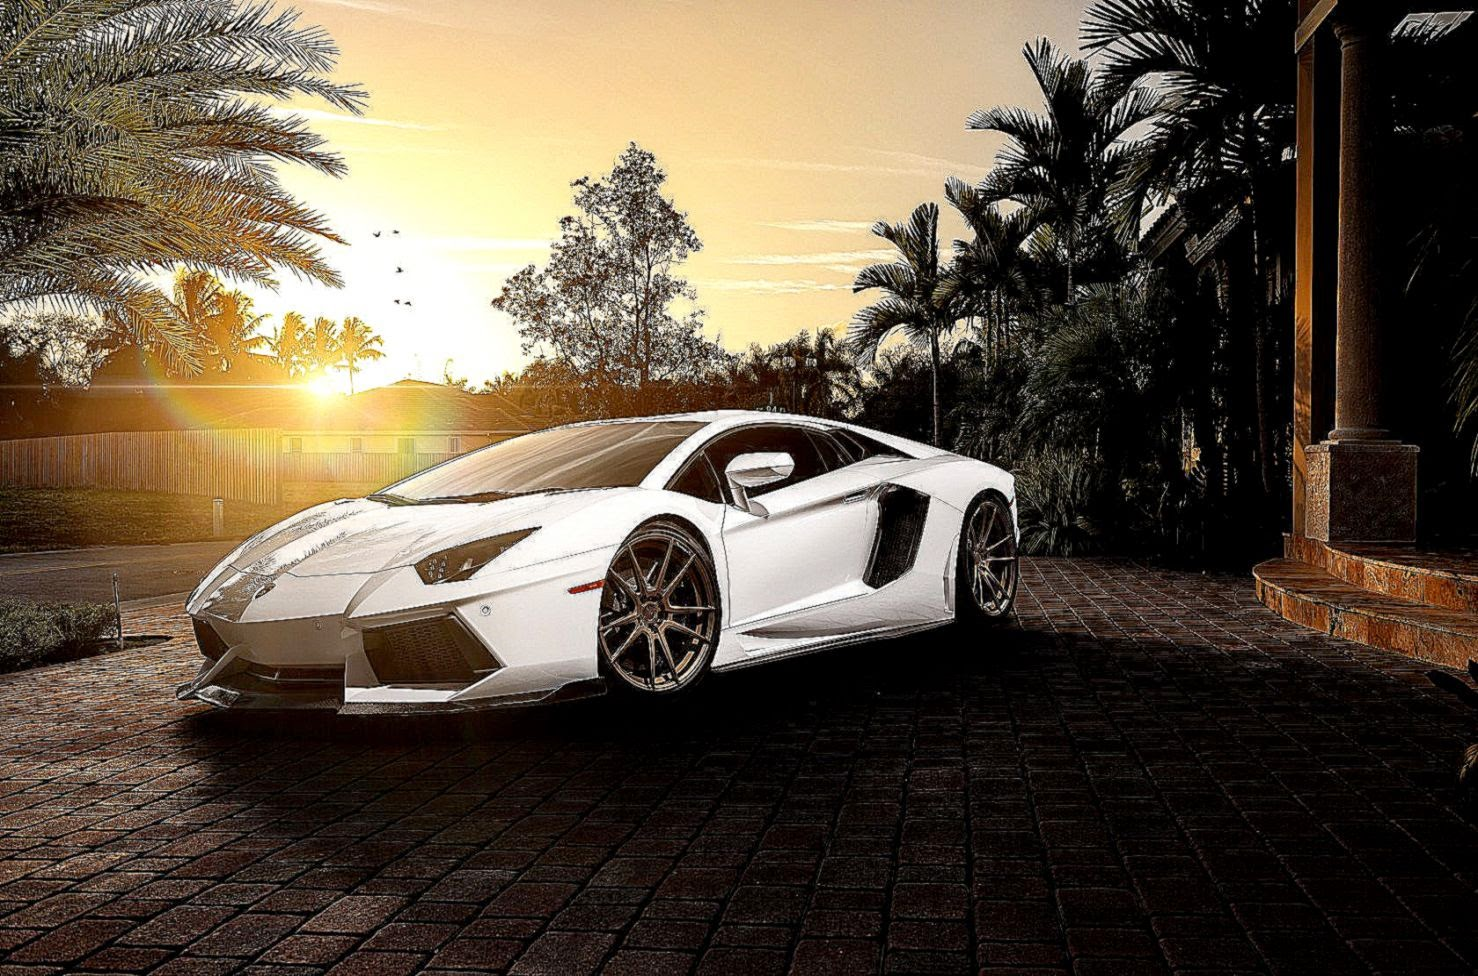 Lamborghini Wallpaper Hd White Awesome City | Best HD ...